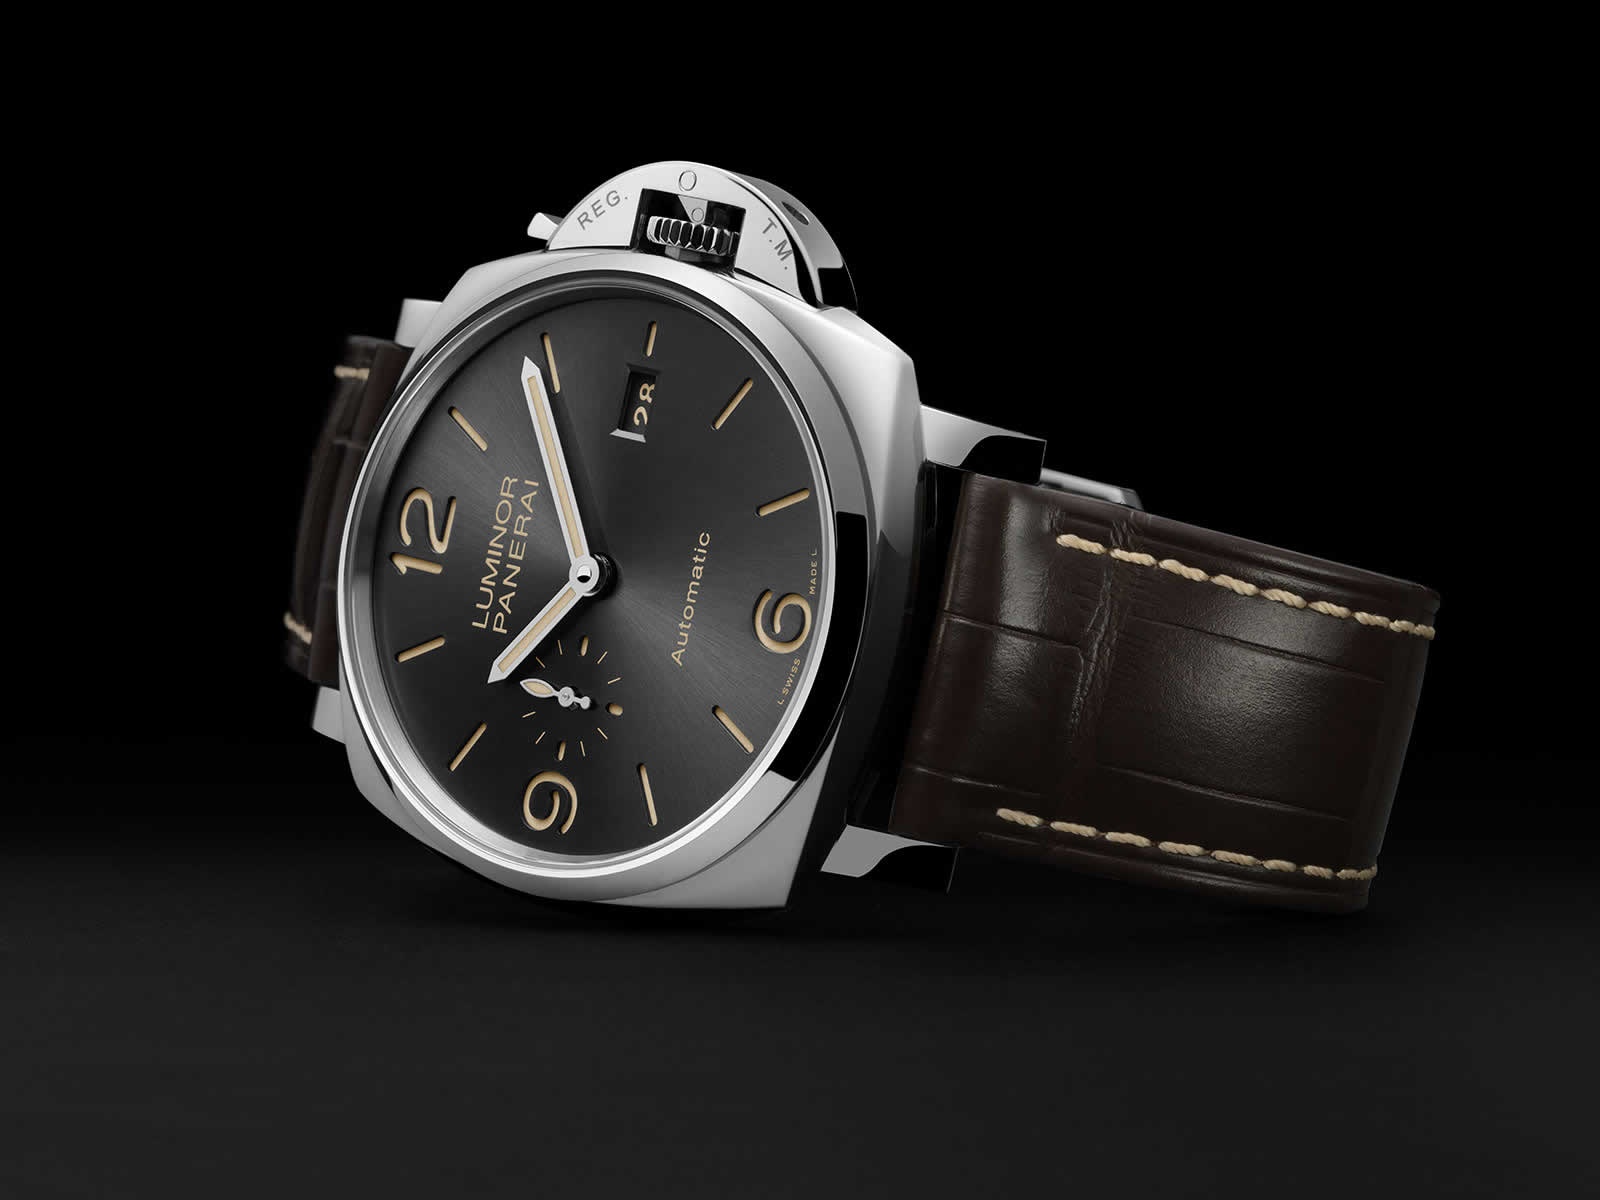 Panerai-Luminor-Due-3-Days-Automatic-Pam00943-Sihh-2018-5.jpg